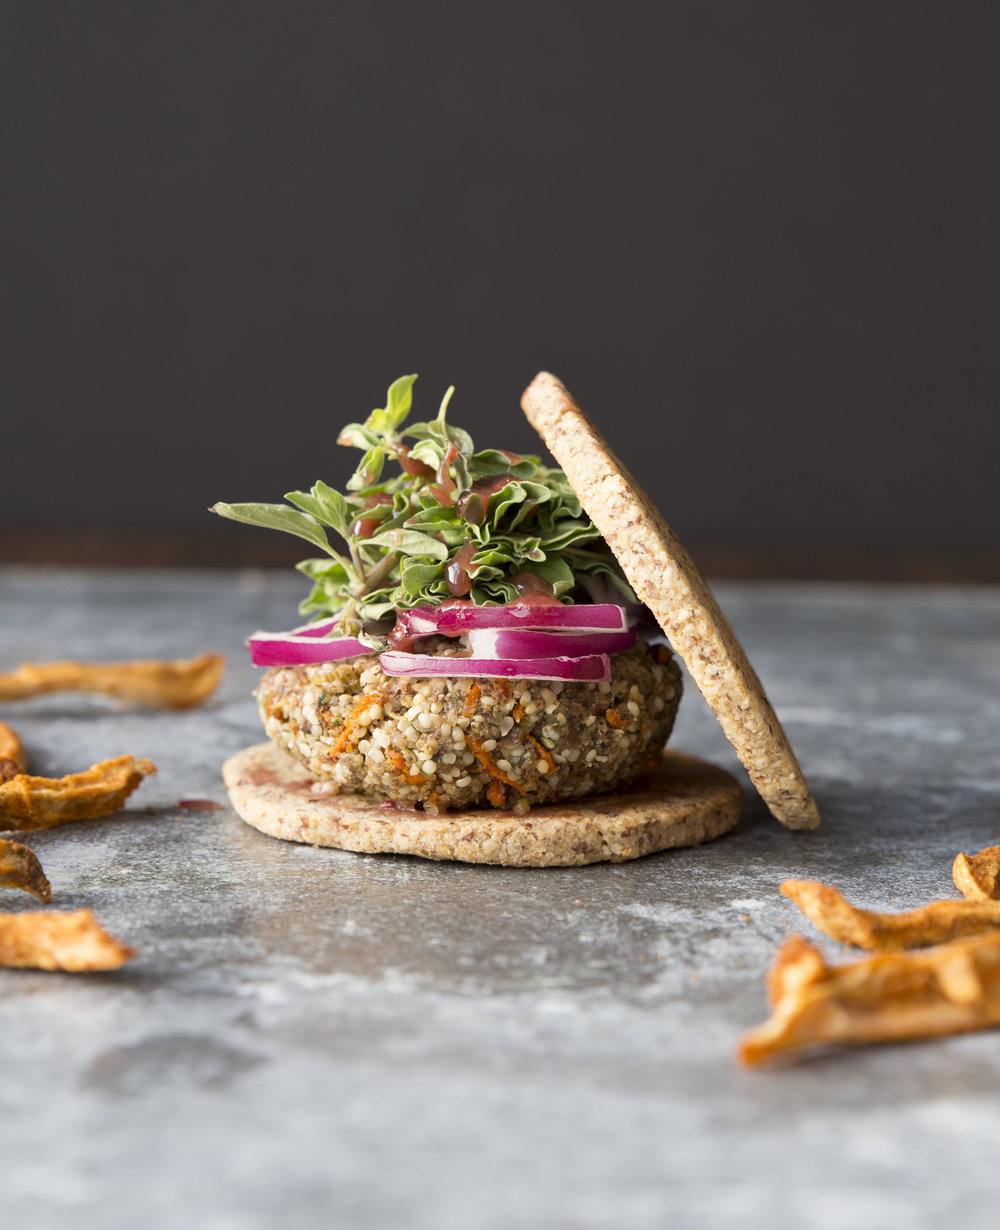 Plant-Protein Burgers with Hemp Seed and Vegetables. Photo from Cook Lively! by Laura-Jane Koers.